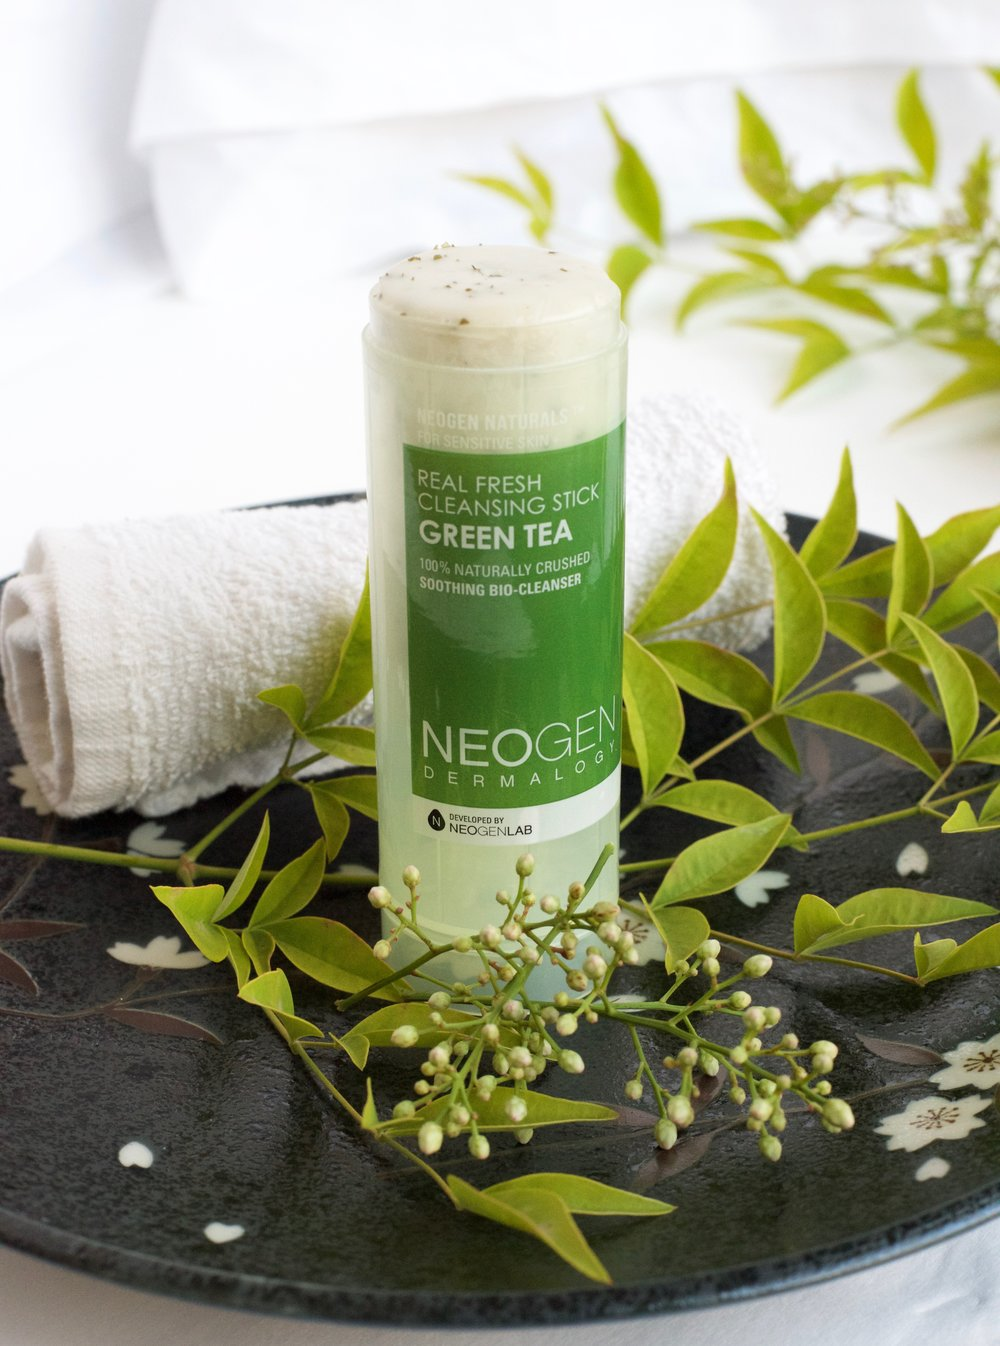 Neogen-Real-Fresh-Cleansing-Stick-Green-Tea_DSC_3672.jpg